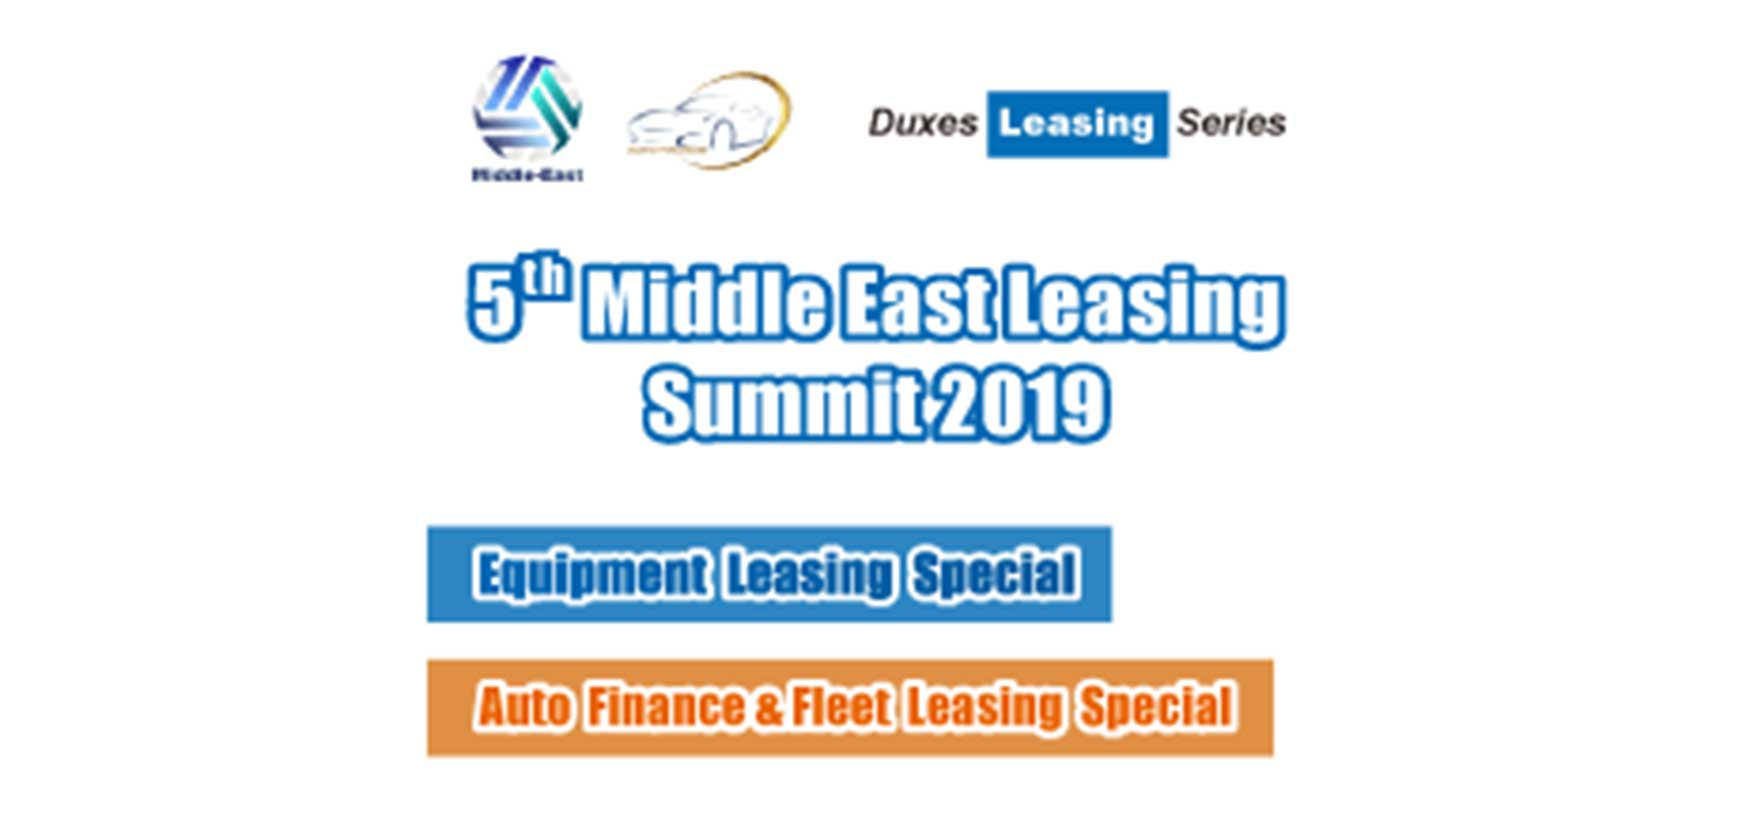 middle-east-leasing-summit-2019-icon